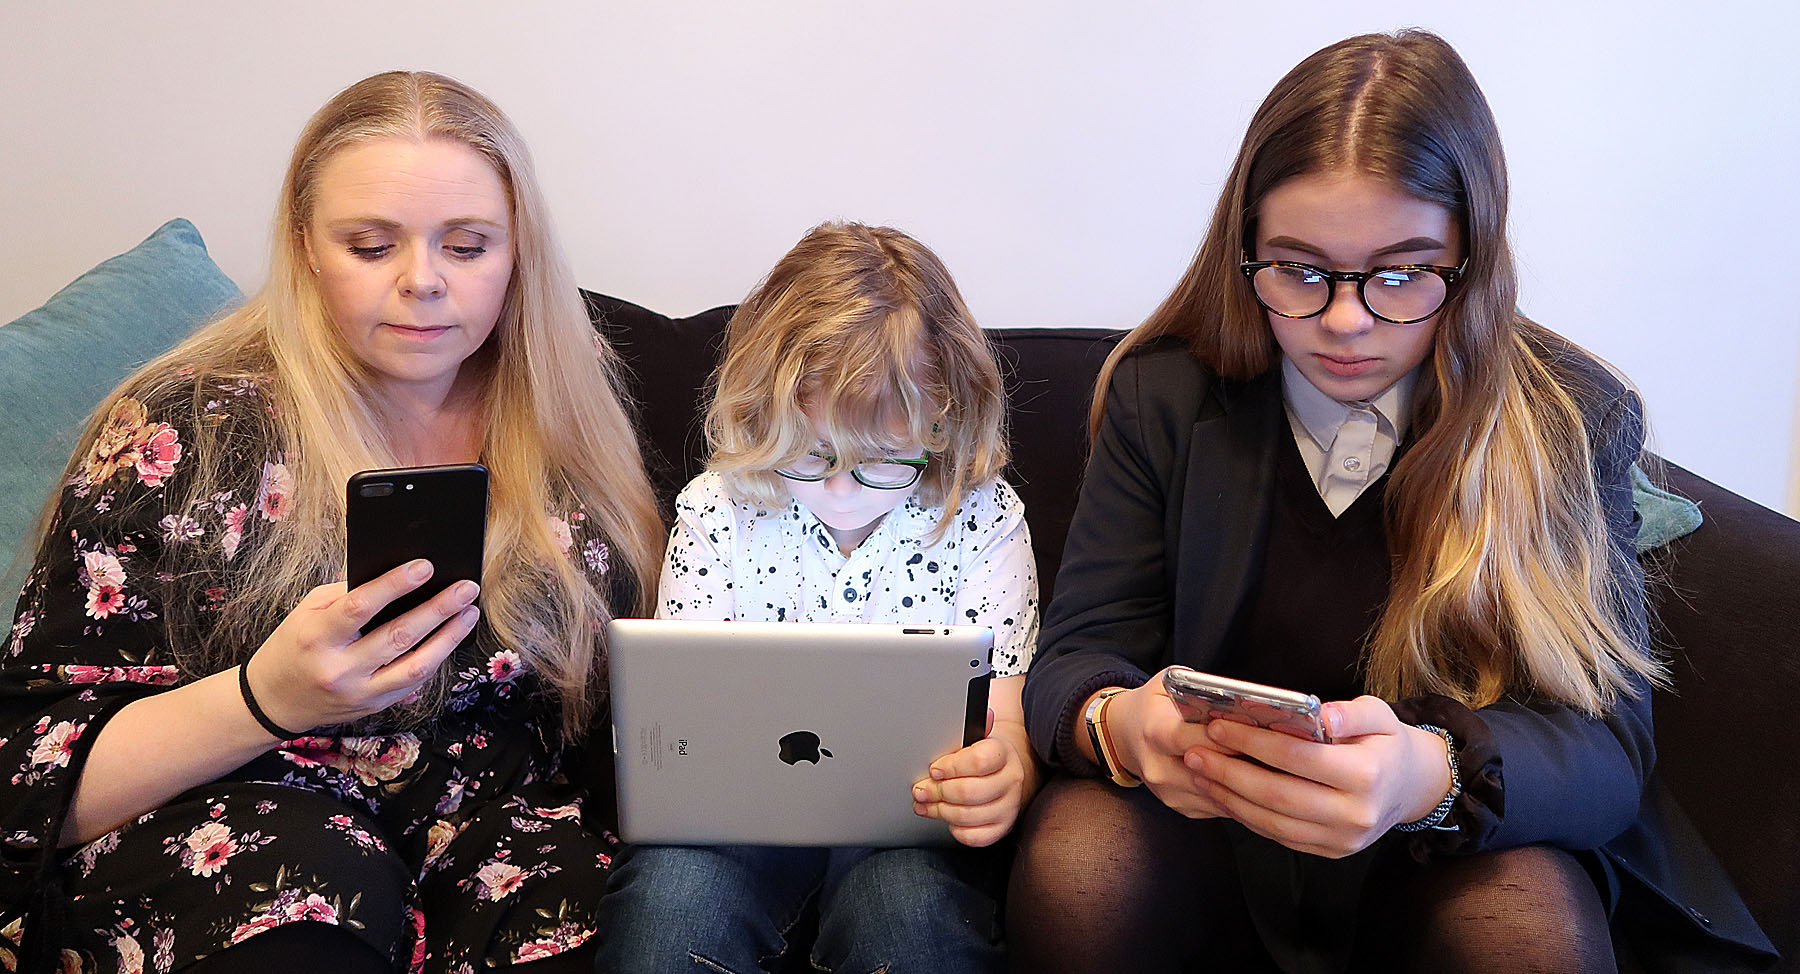 I know I need to set an example for my children when using my devices